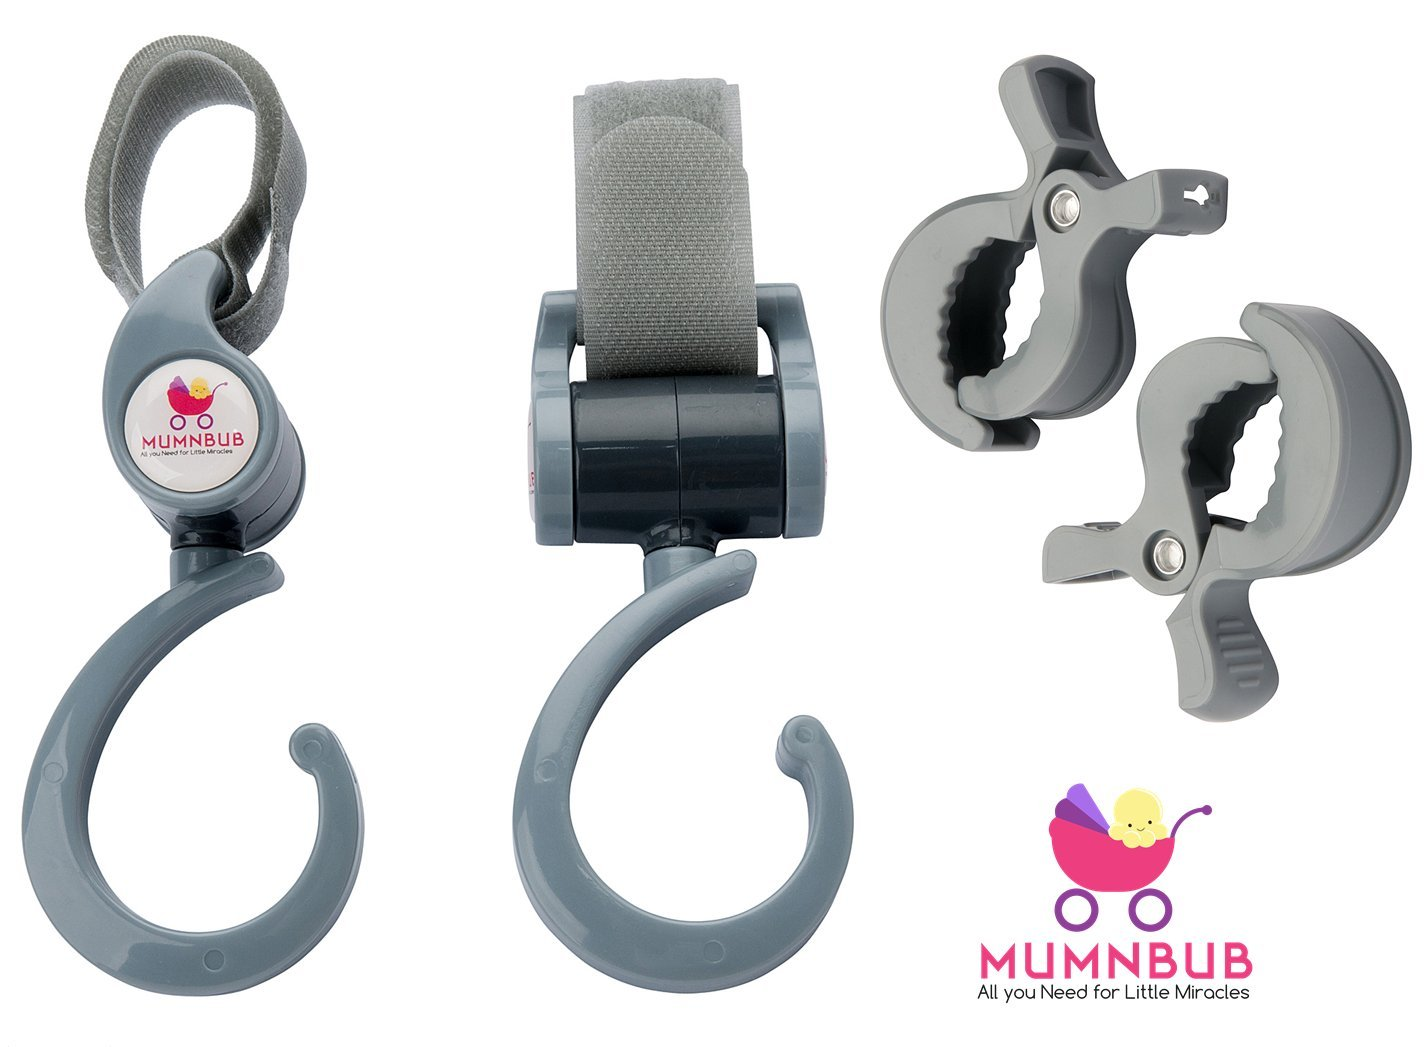 MumnBub Stroller Hook - 2 Pack (Grey) Multi-Purpose Heavy Duty Buggy Clips for Mommy - Universal Fit Perfect Pram Accessories for Hanging Diaper bag, Shopping bag, Groceries -Includes 2 Stroller Pegs by MumnBub (Image #1)